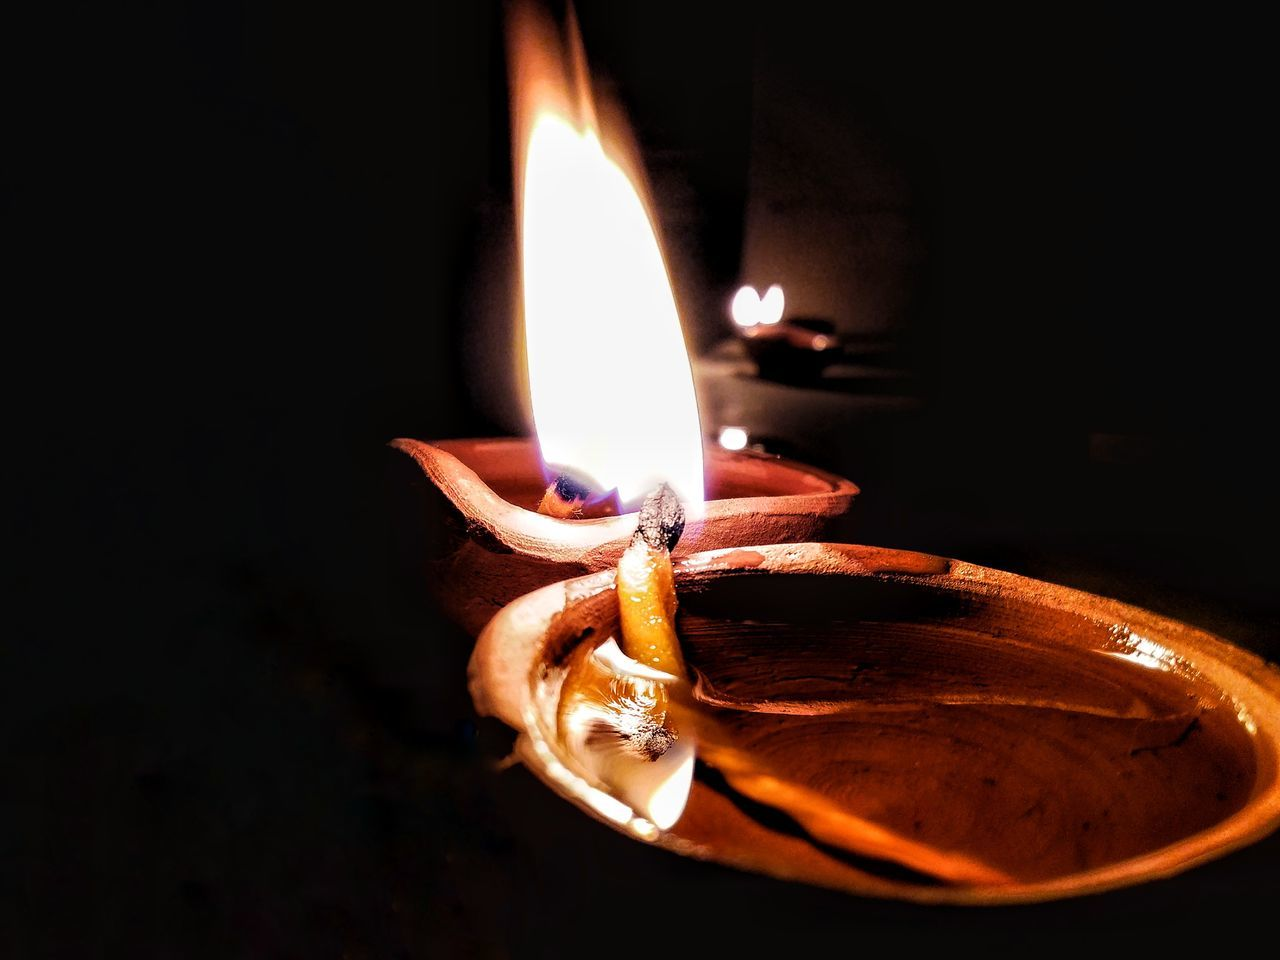 Befriending Maximum Closeness Flame Burning Illuminated Close-up Heat - Temperature Oil Lamp Diya - Oil Lamp Cultures Diwali Taking Photos Check This Out Diwalicelebrations Diwali Diwali💟🎇🎆🌌 Diwali Celebration Macro Photography